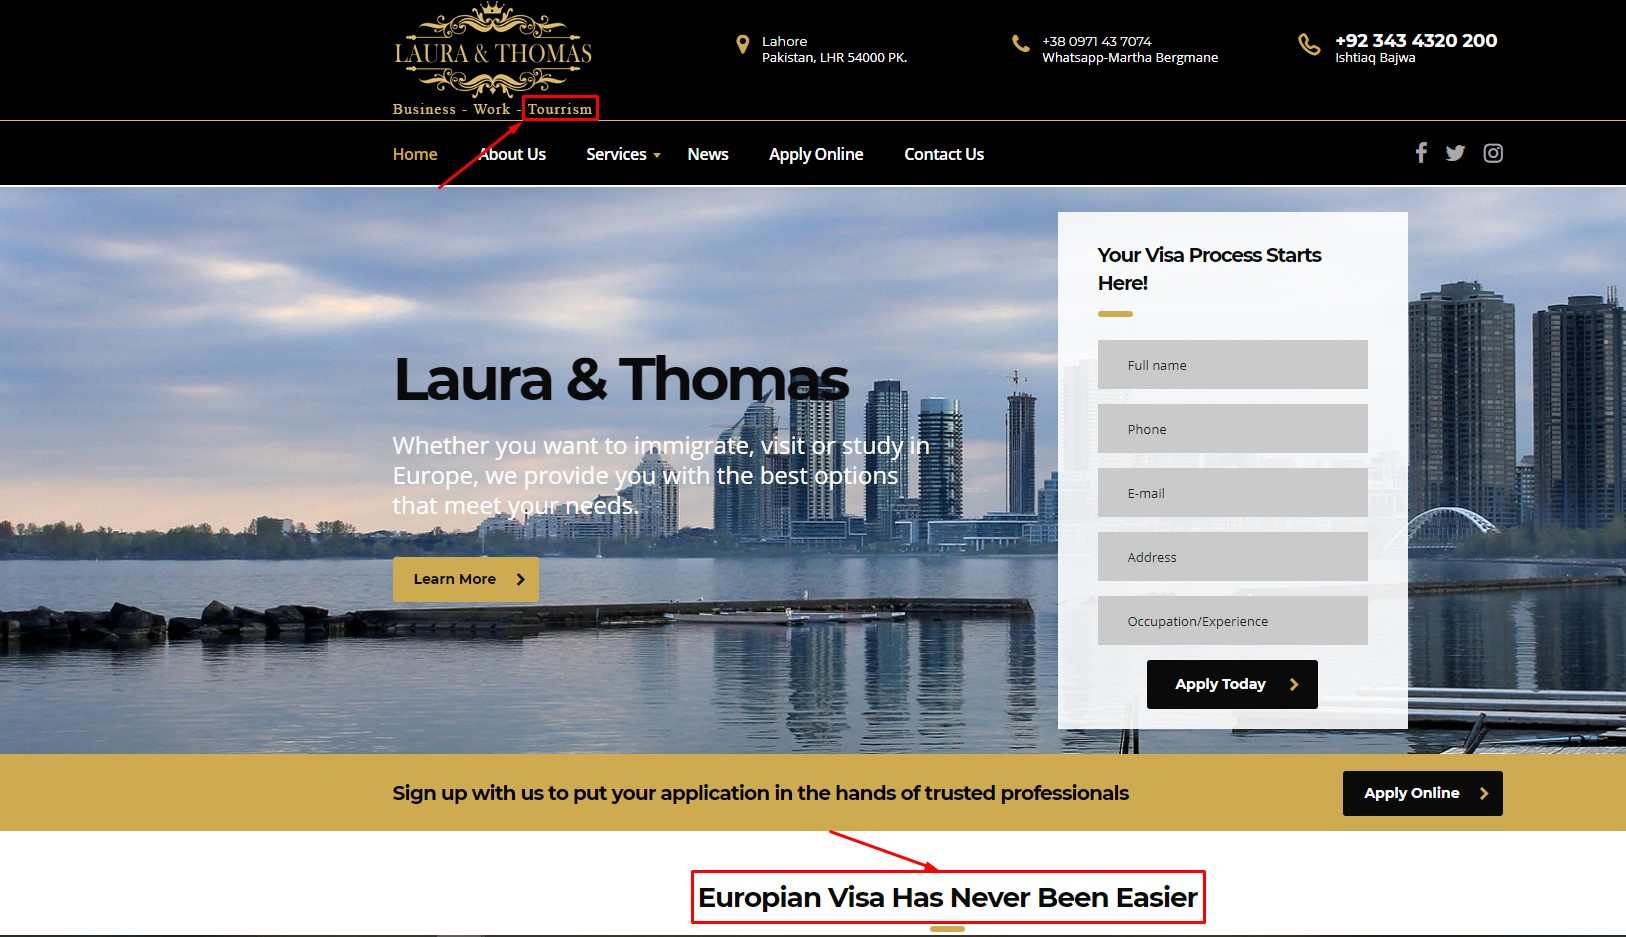 European visa Canadian immigration website scam fraud | real or fake